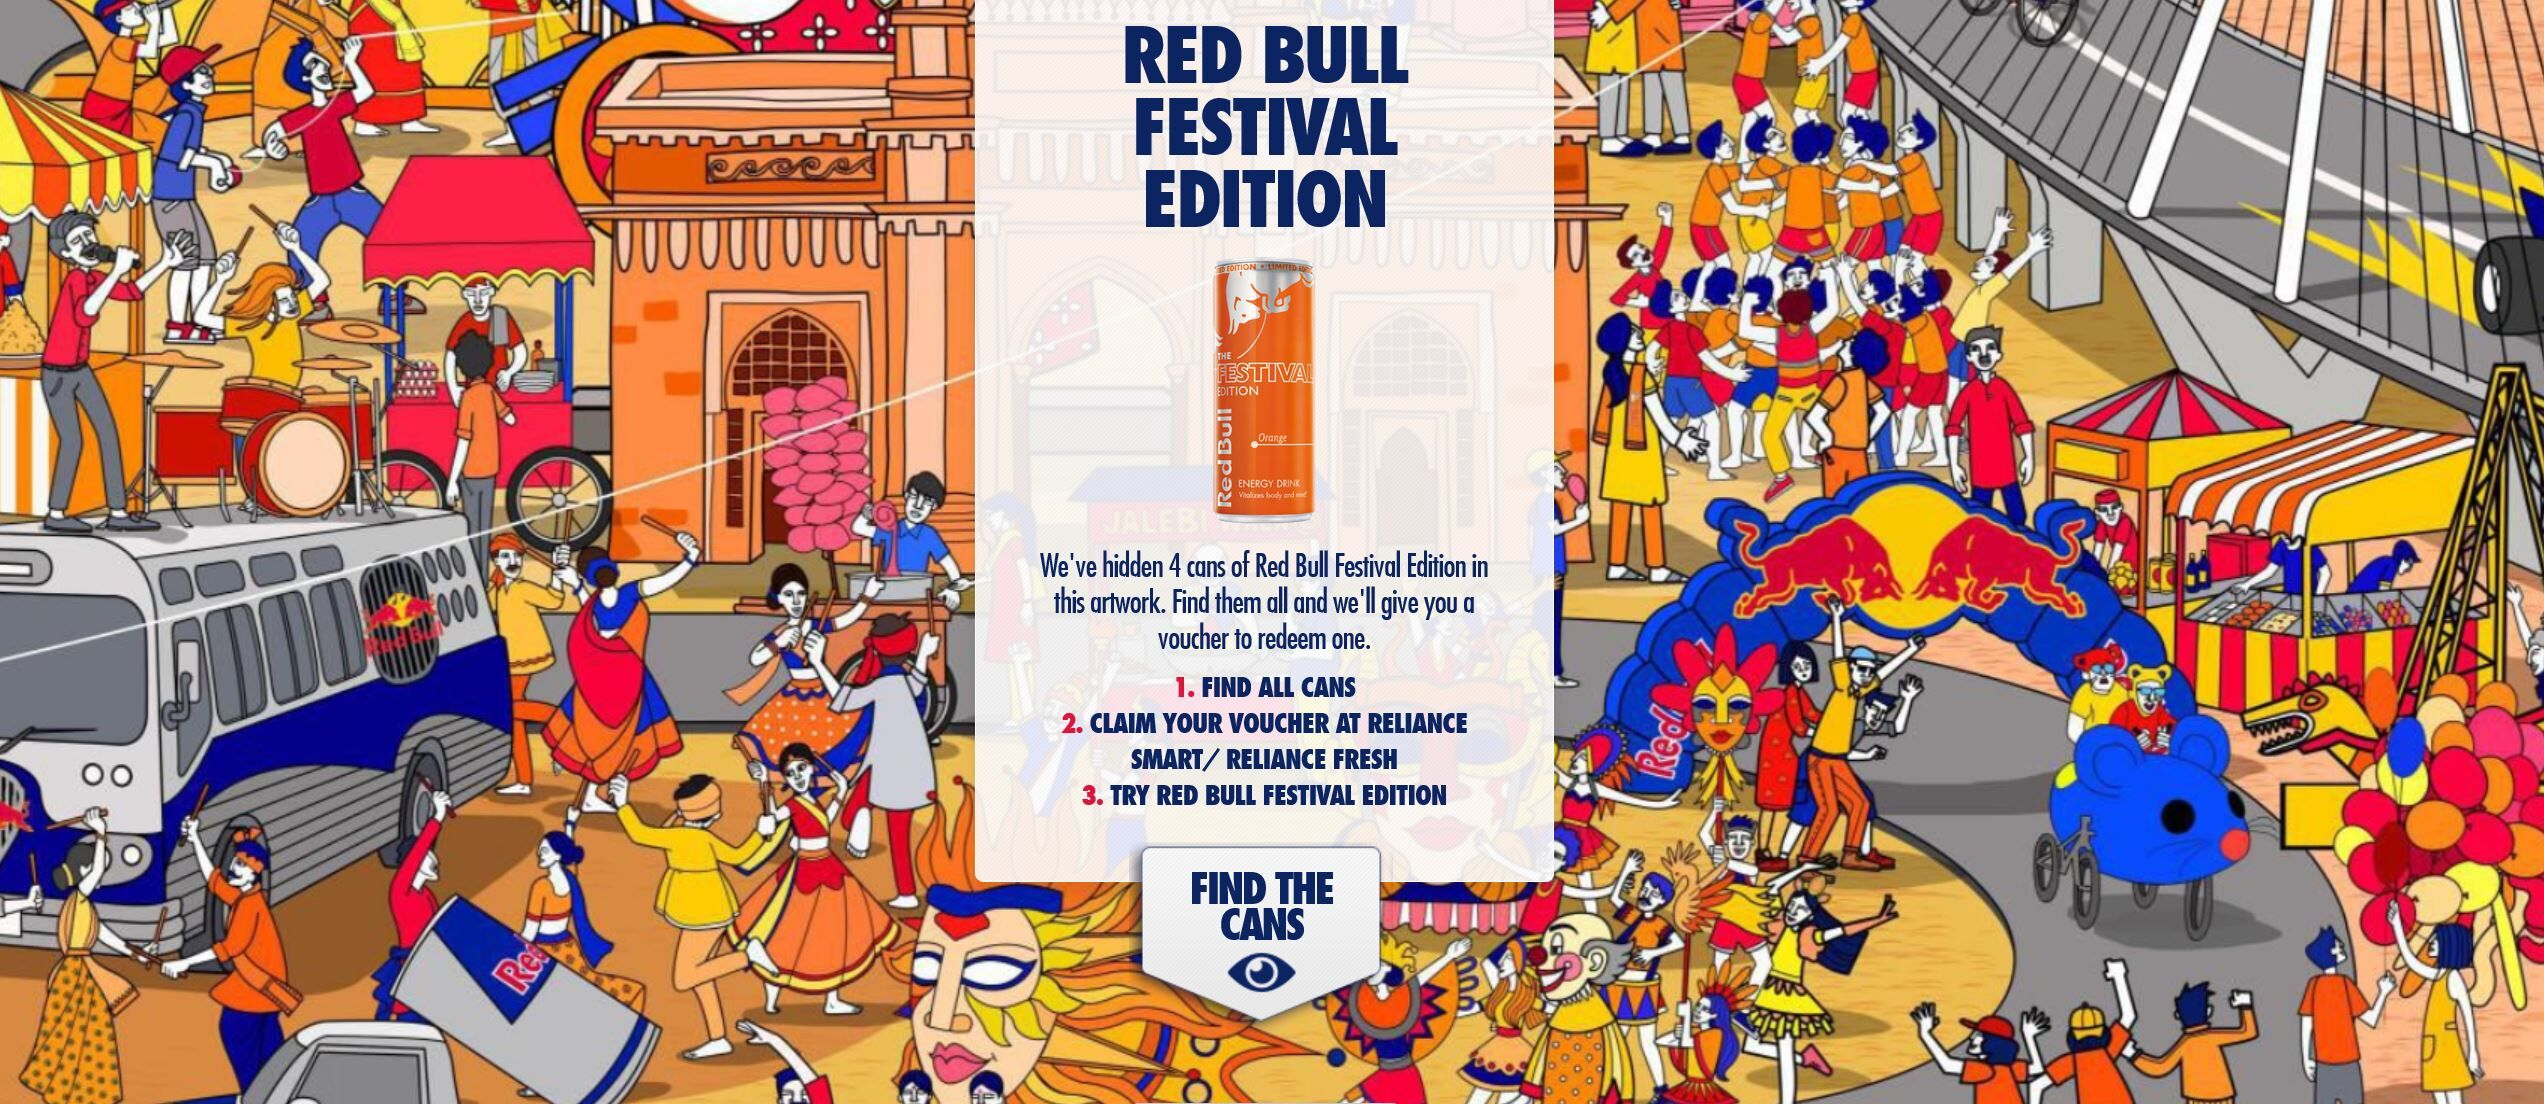 Red Bull India launches New Festival Edition With Orange Flavor